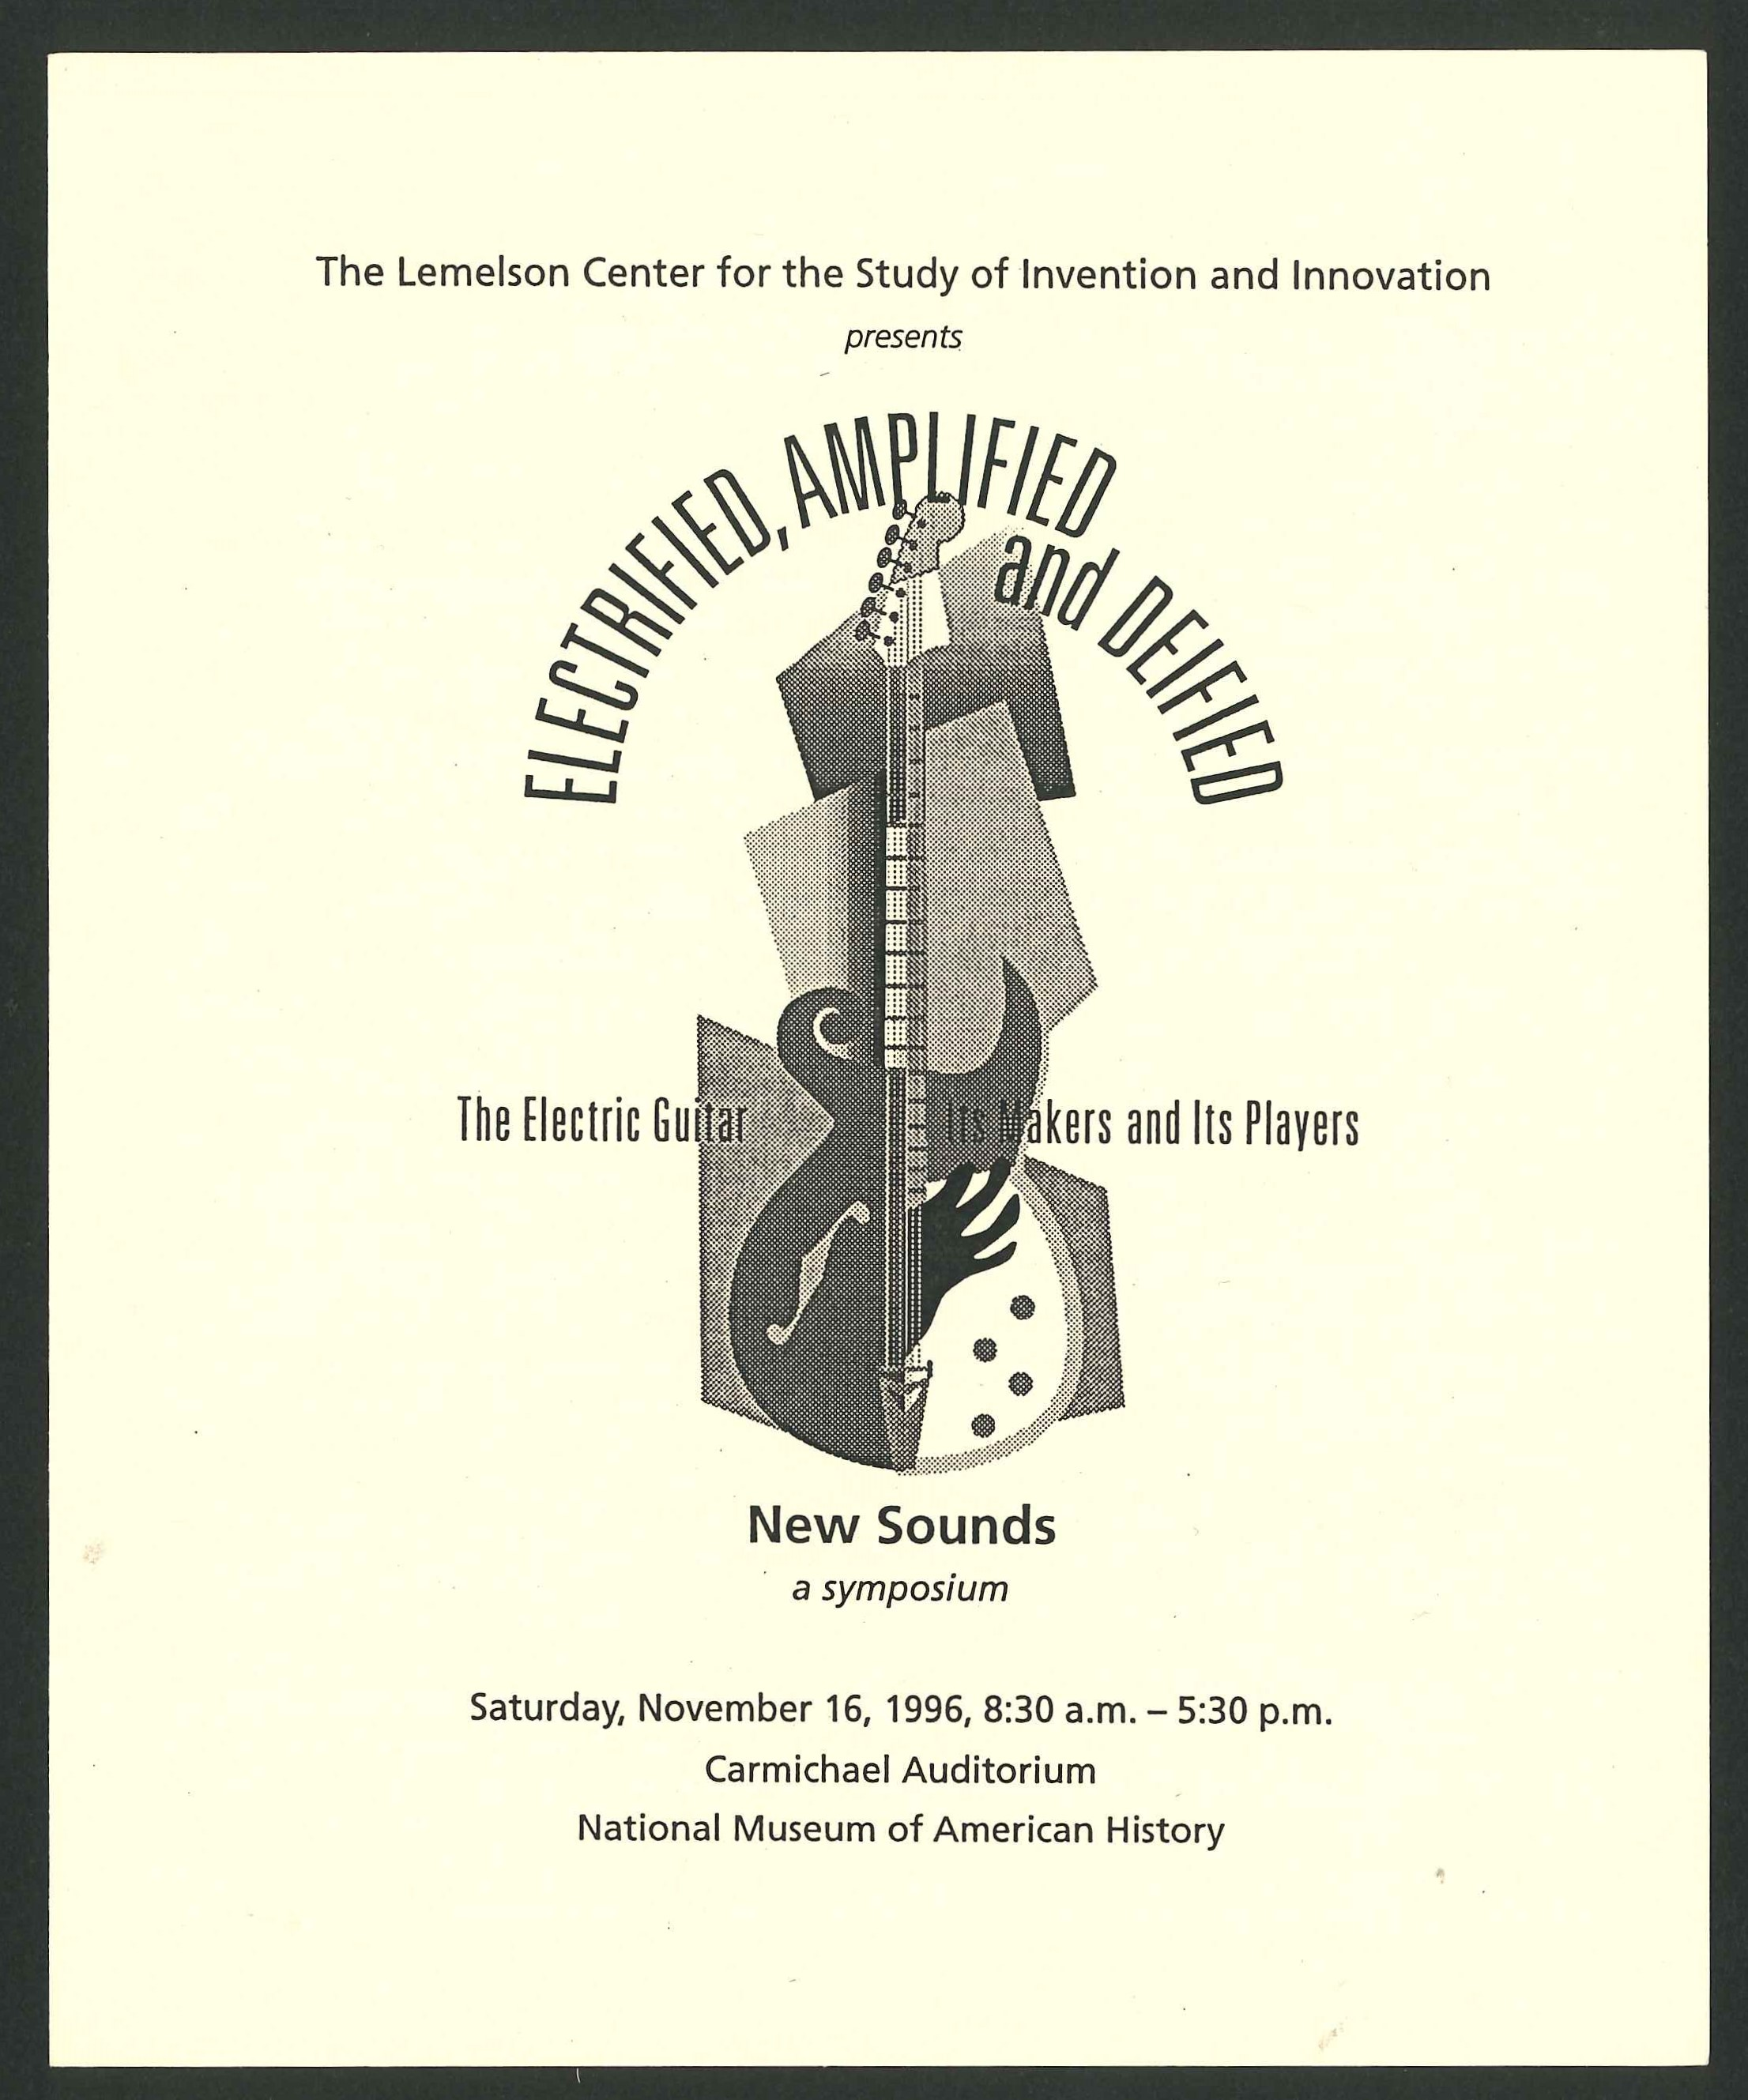 Cover of the program for the New Sounds symposium at the National Museum of American History on Nove